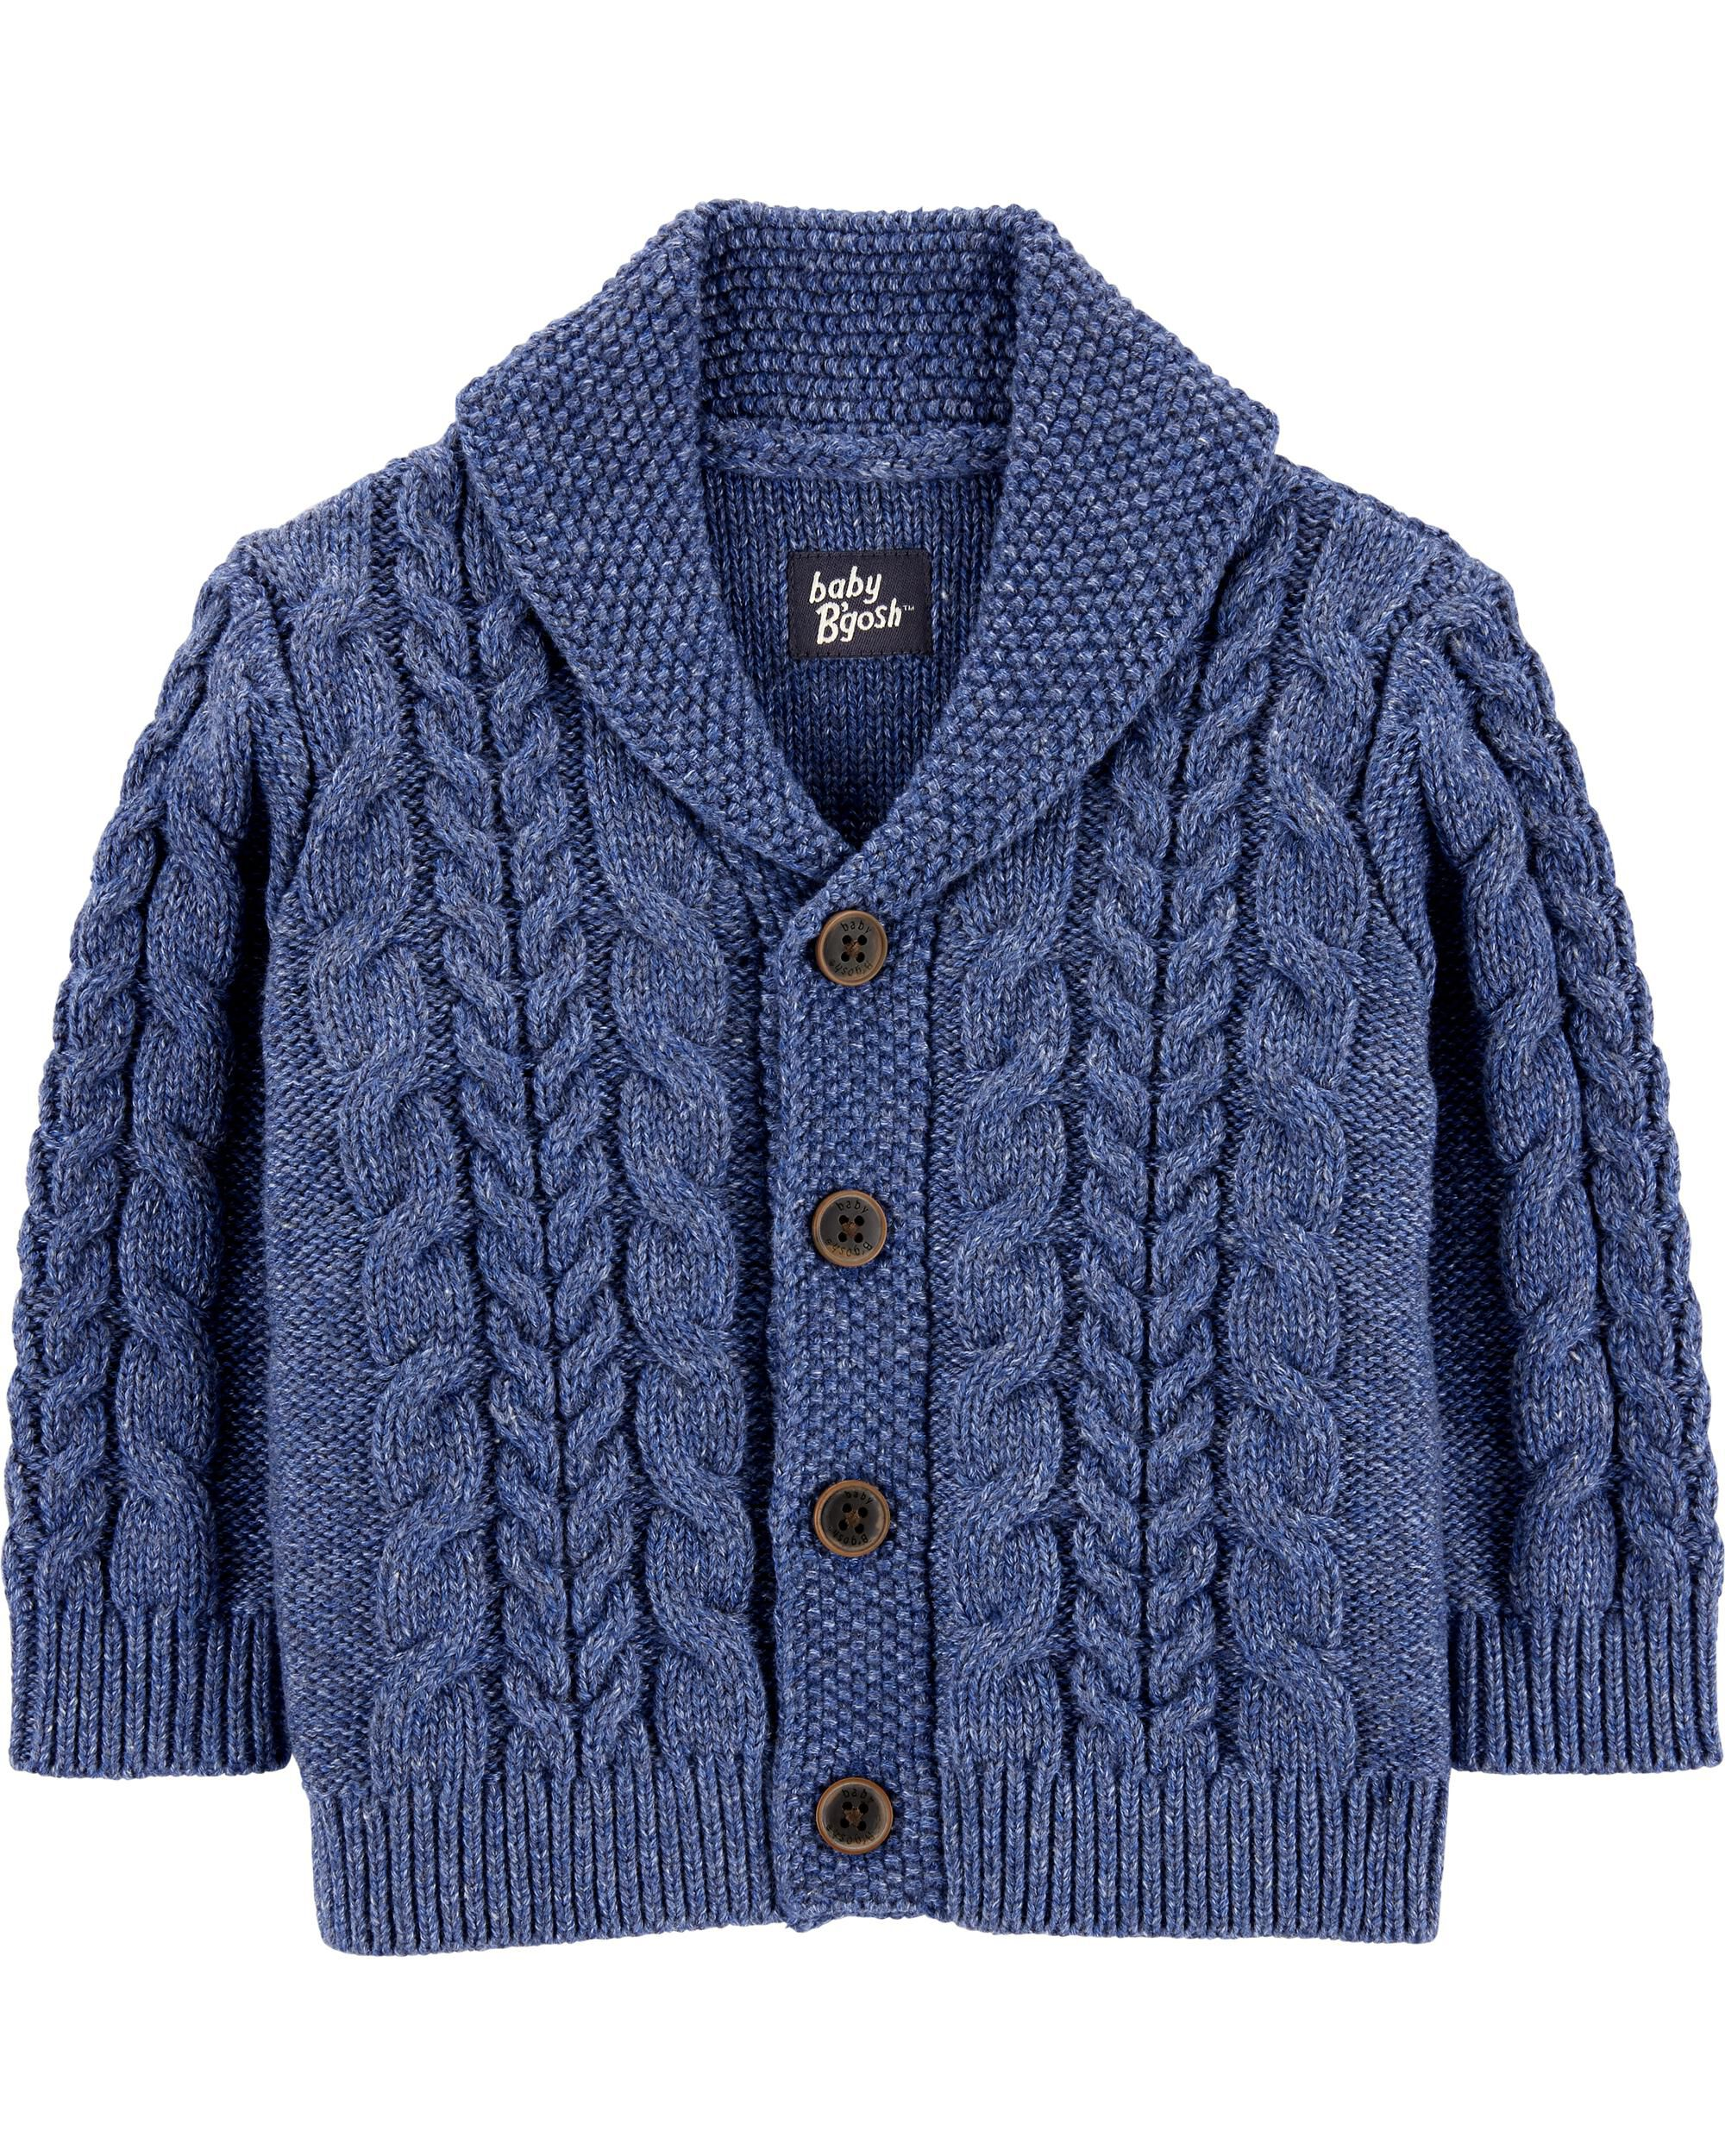 More Styles Available Genuine Little Boys Sweater